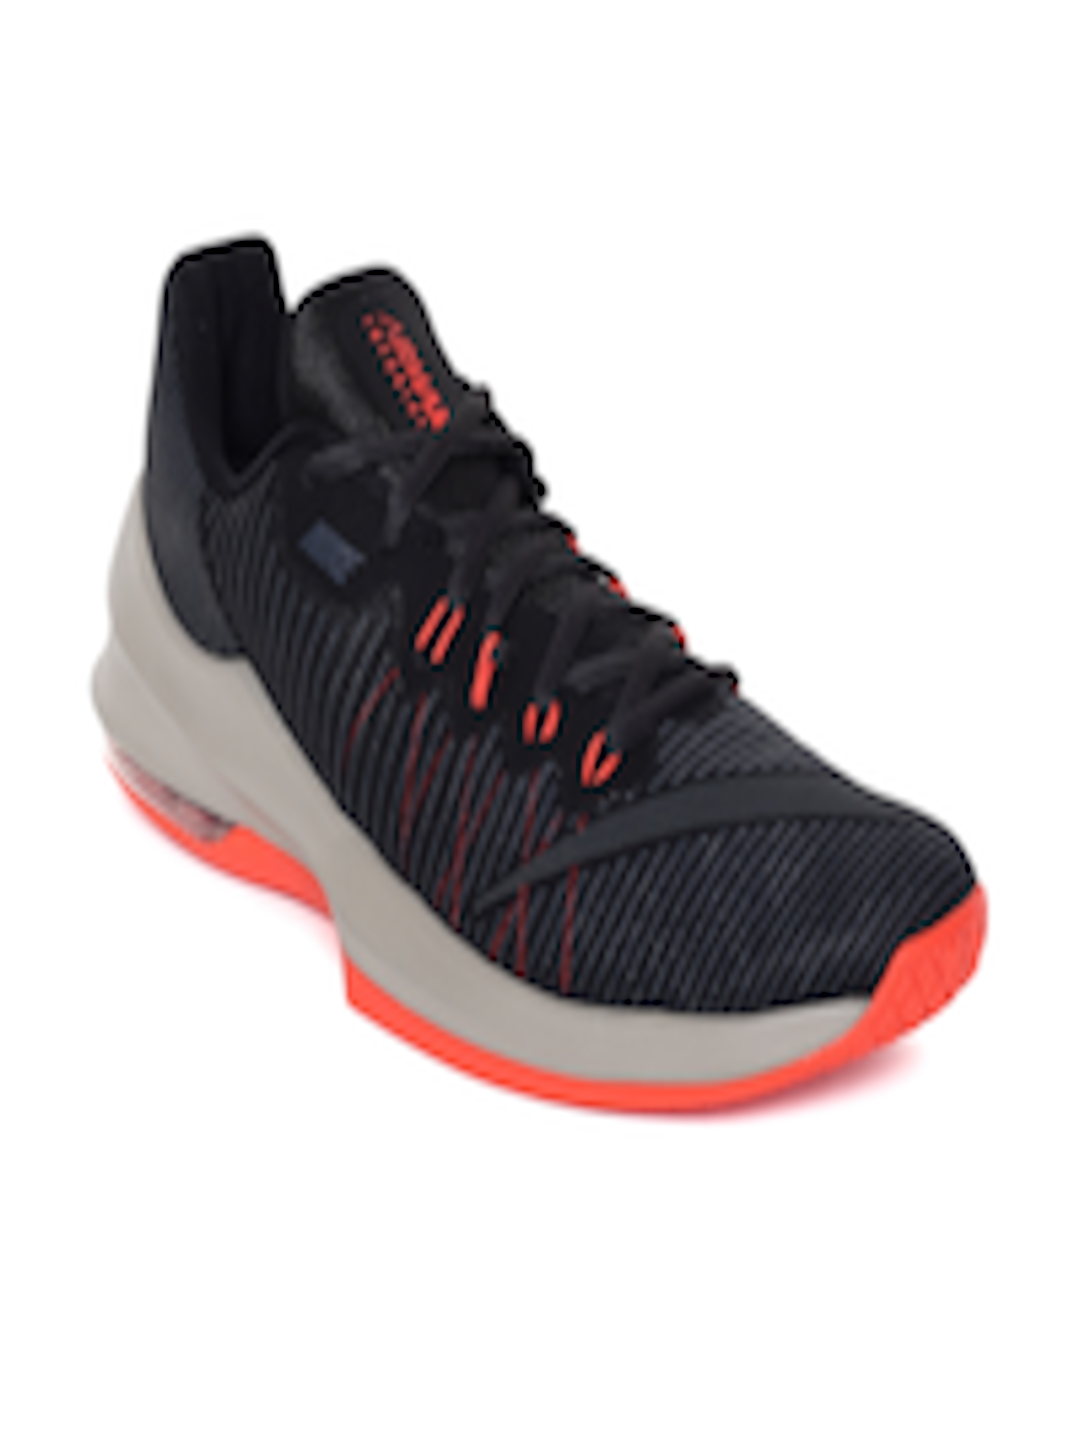 b50f5ca1d61 Buy Nike Men Black Air Max Infuriate 2 Low Basketball Shoe - Sports Shoes  for Men 6676895 | Myntra